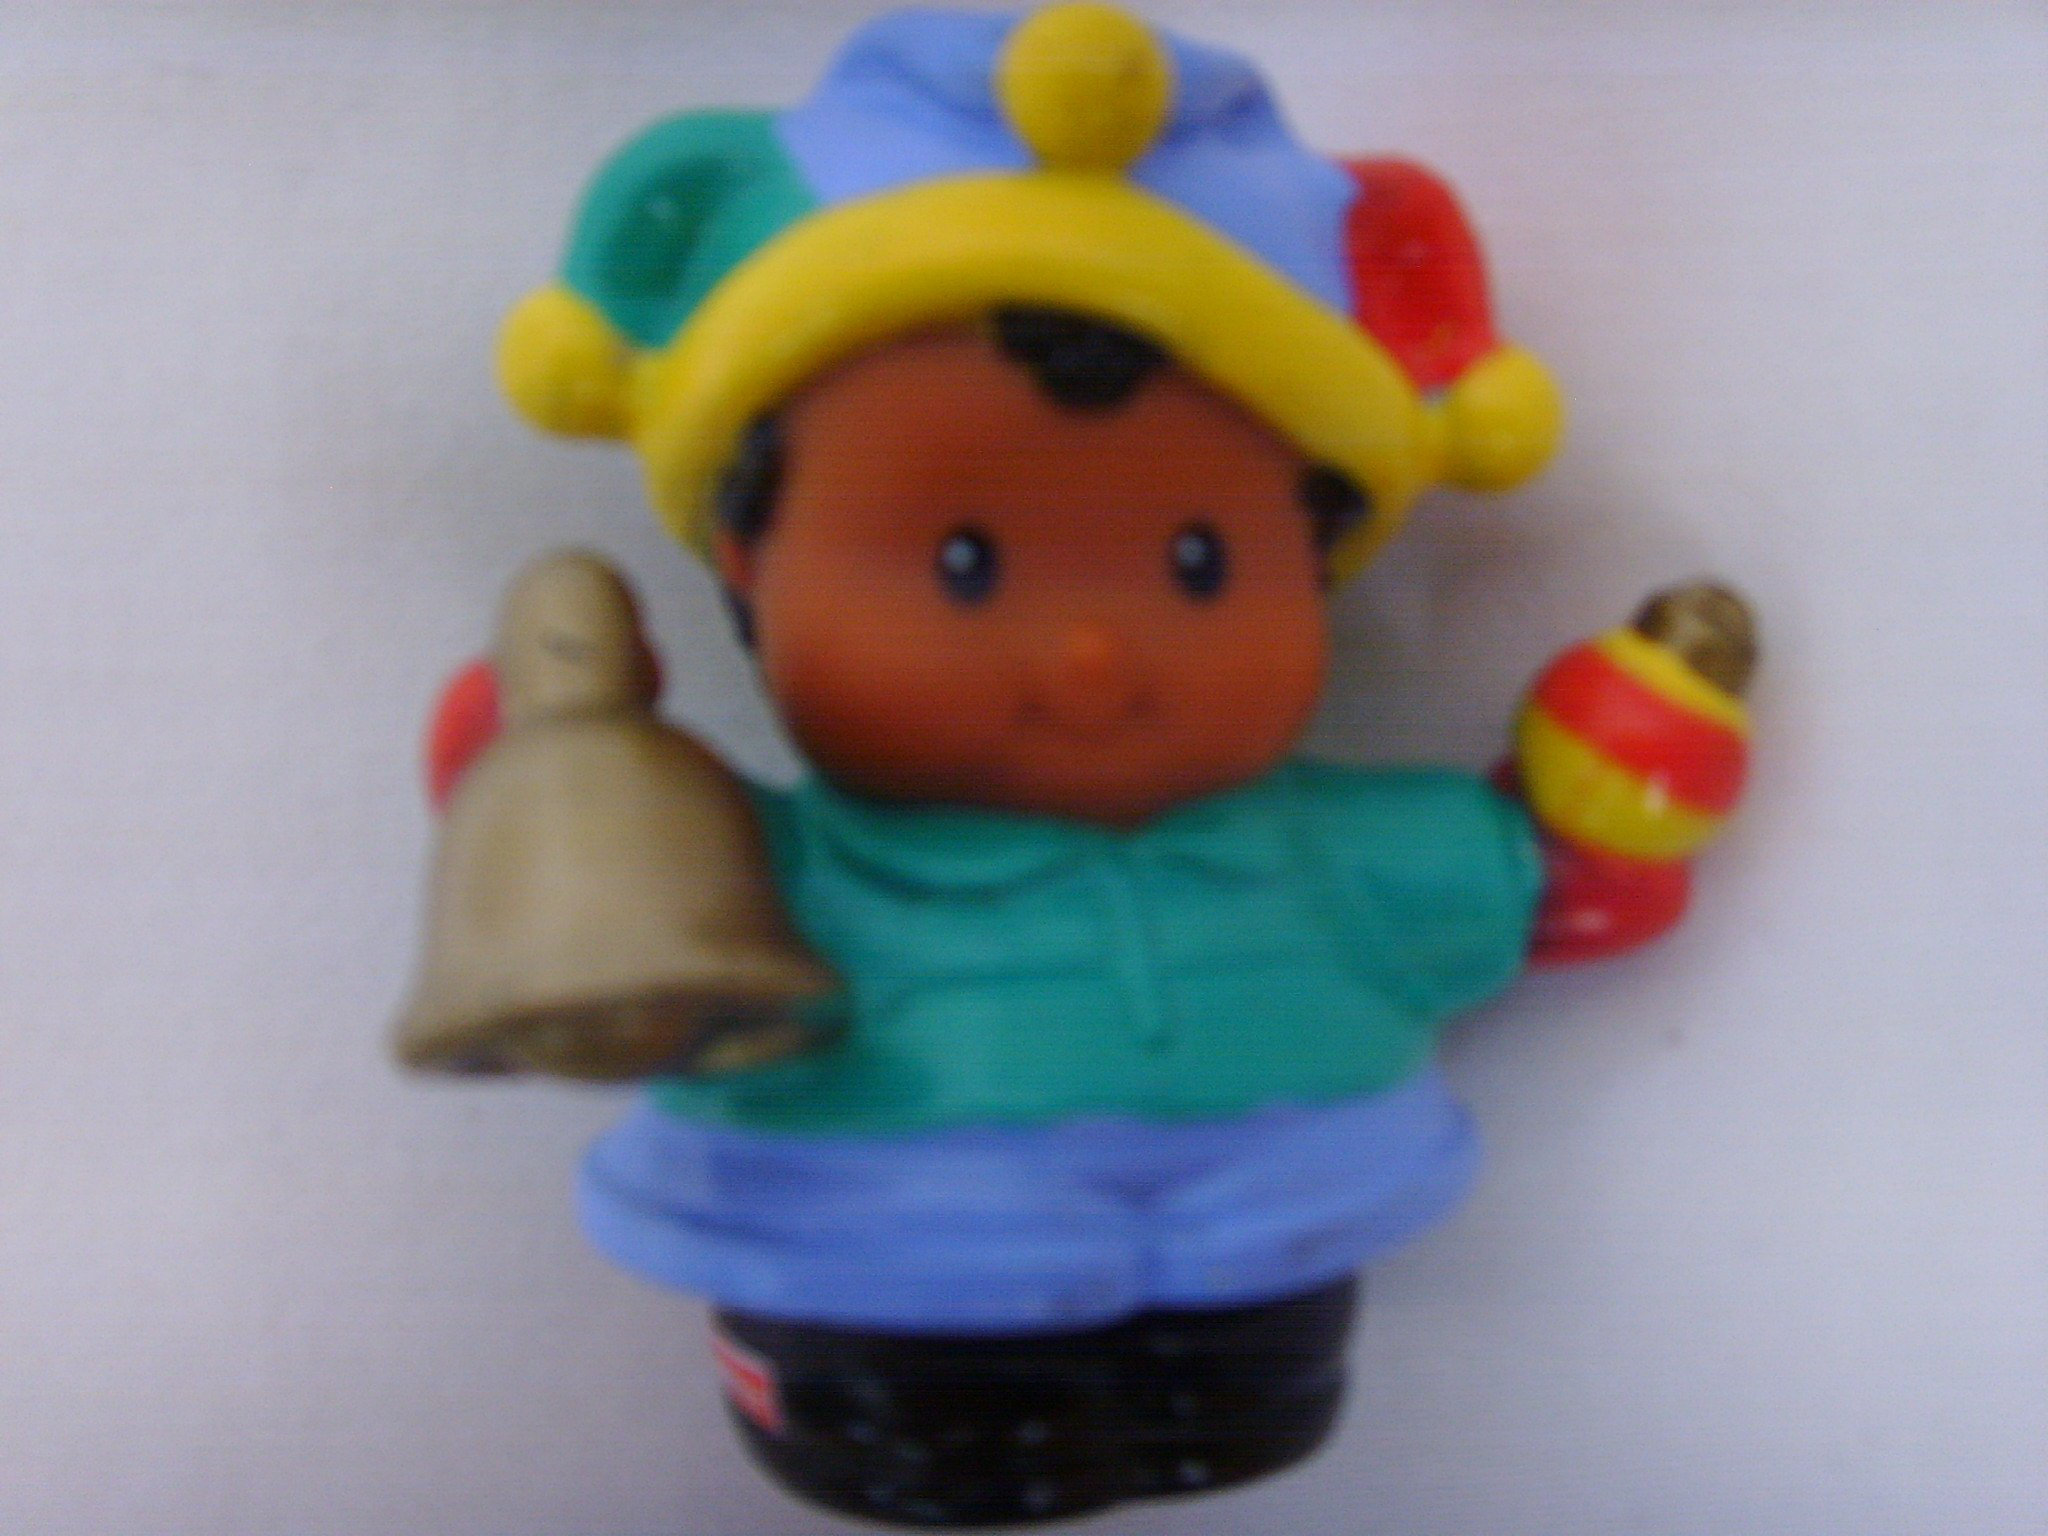 Little People Fisher Price Michael African American Jester Replacement Part Figure Toy